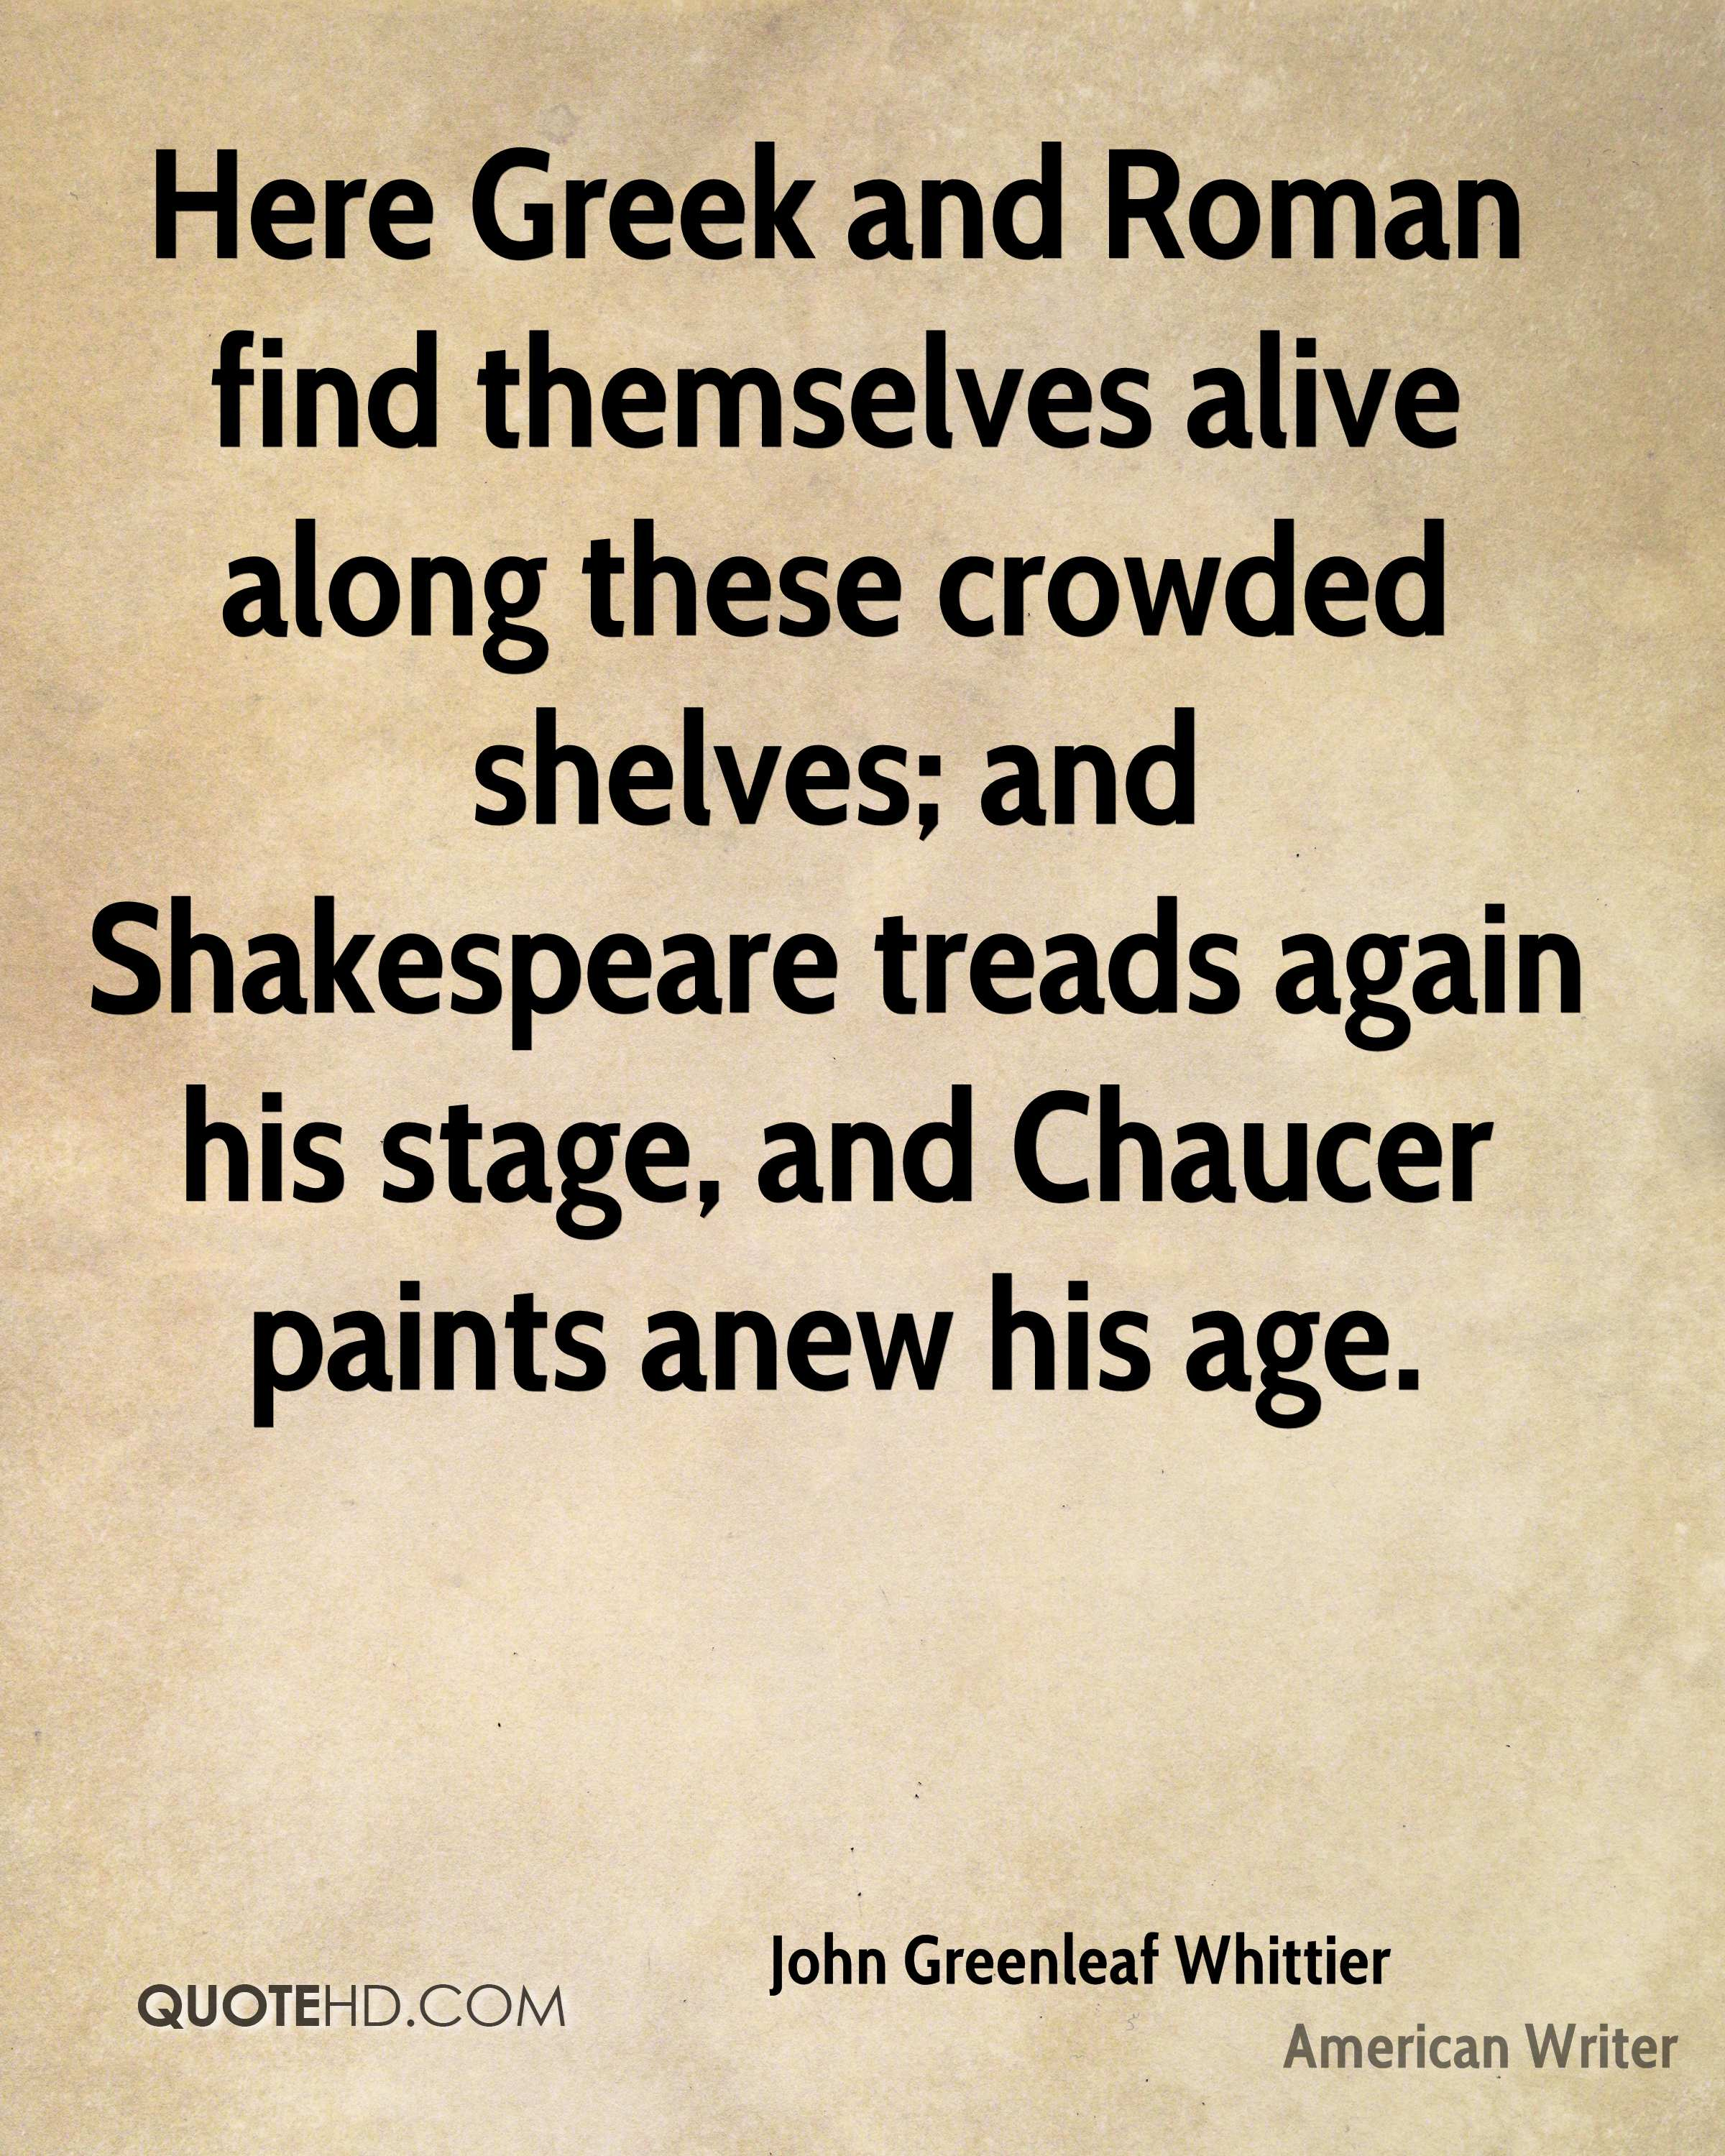 Here Greek and Roman find themselves alive along these crowded shelves; and Shakespeare treads again his stage, and Chaucer paints anew his age.